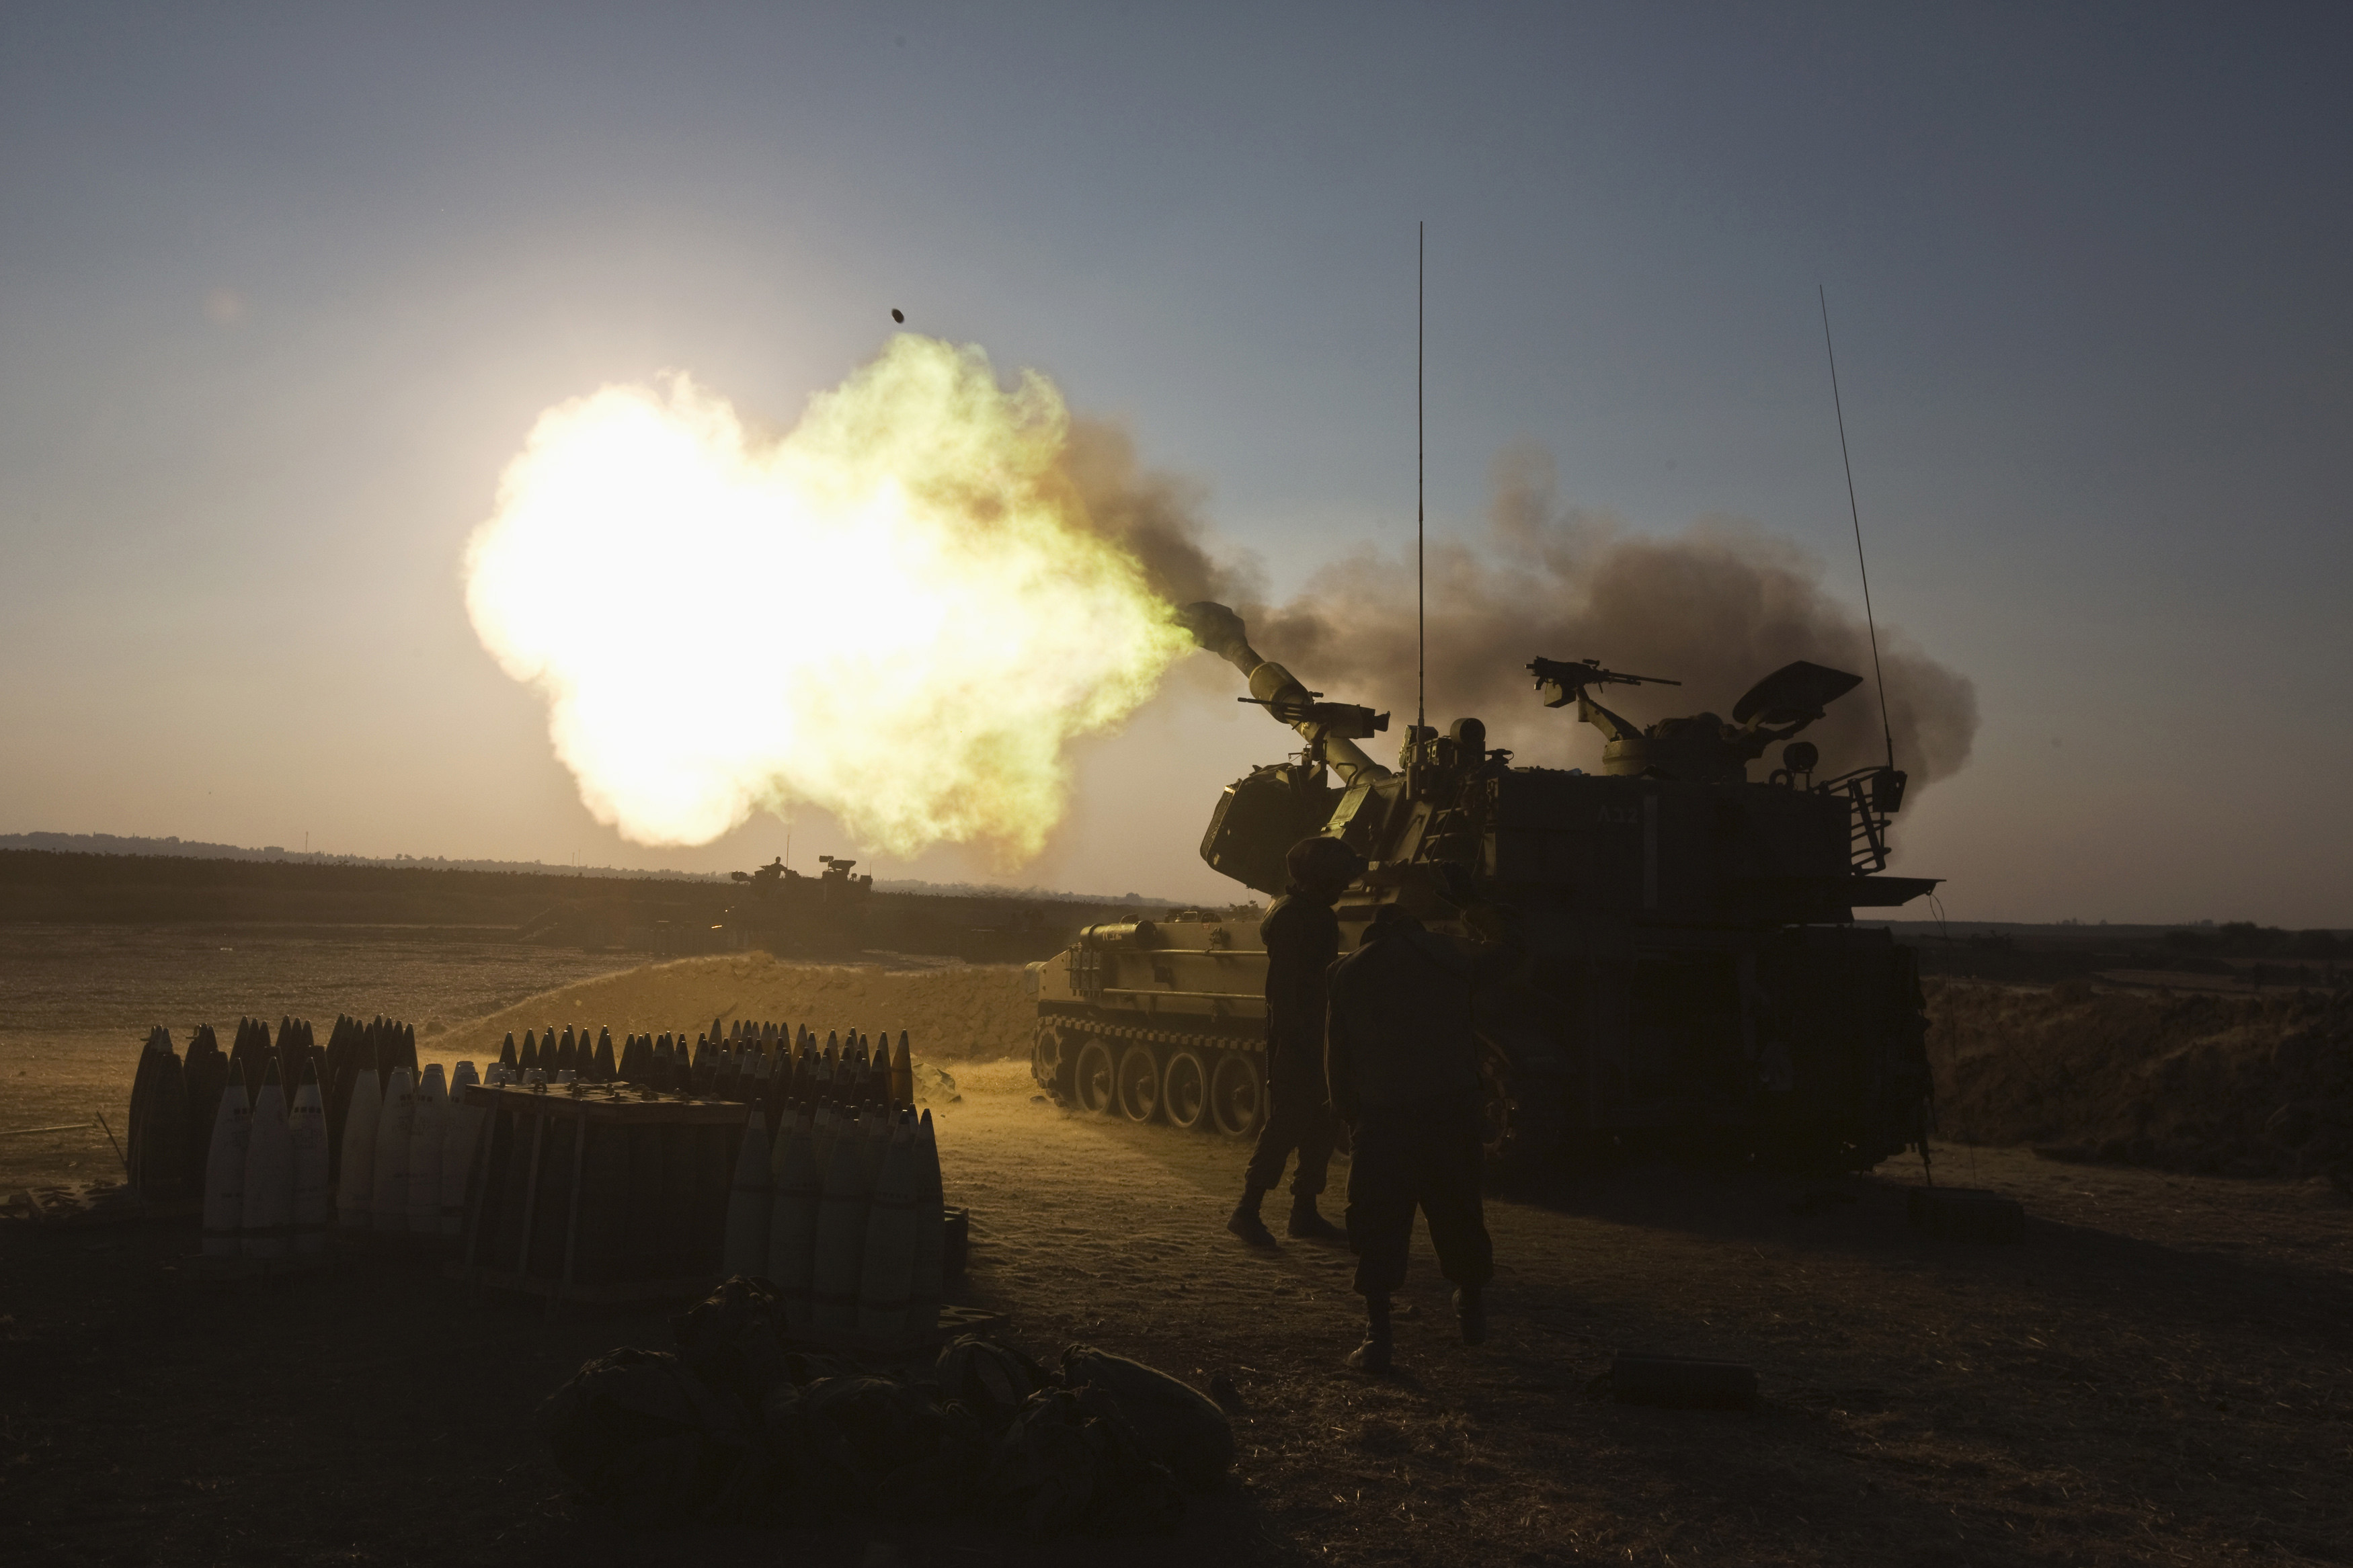 An Israeli mobile artillery unit fires towards the Gaza Strip July 21, 2014 (Reuters/Nir Elias)